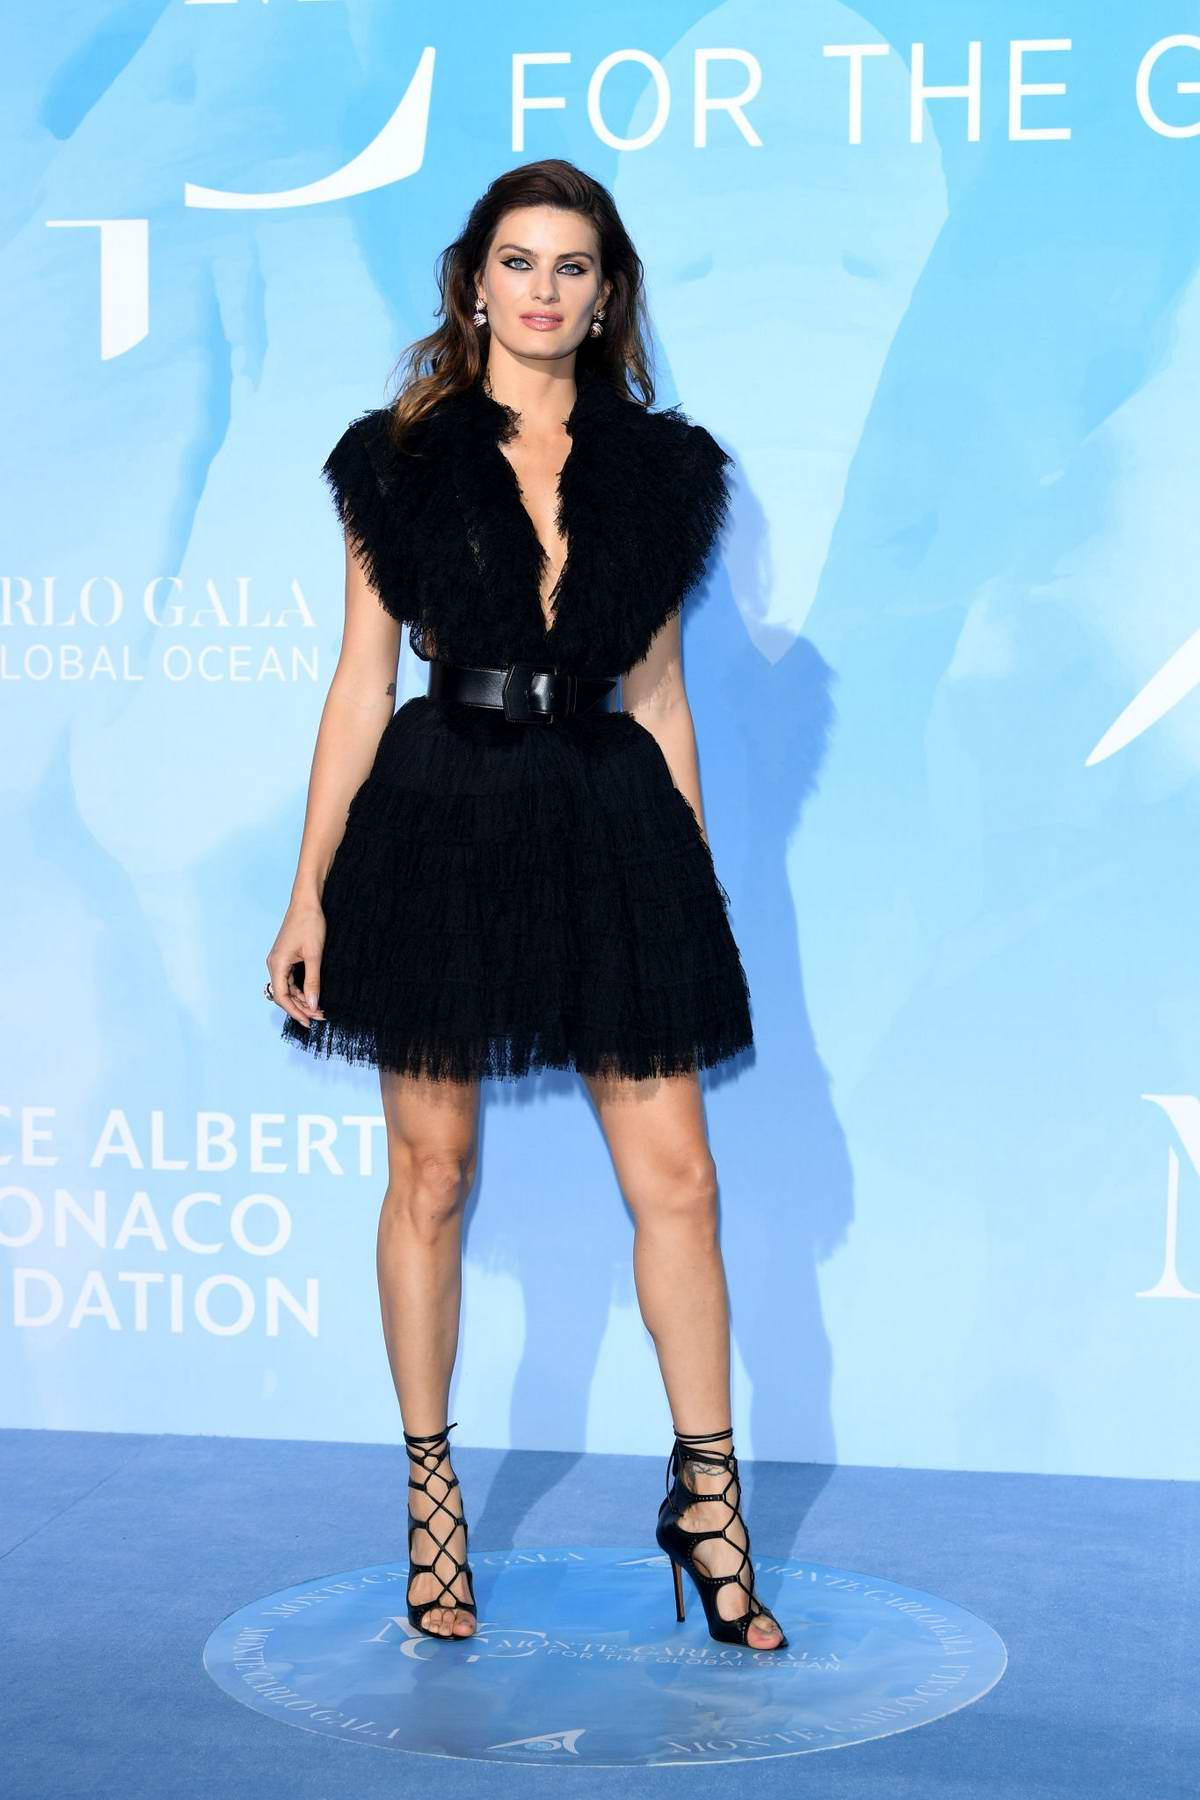 Isabeli Fontana attends the Gala for the Global Ocean in Monte Carlo, Monaco